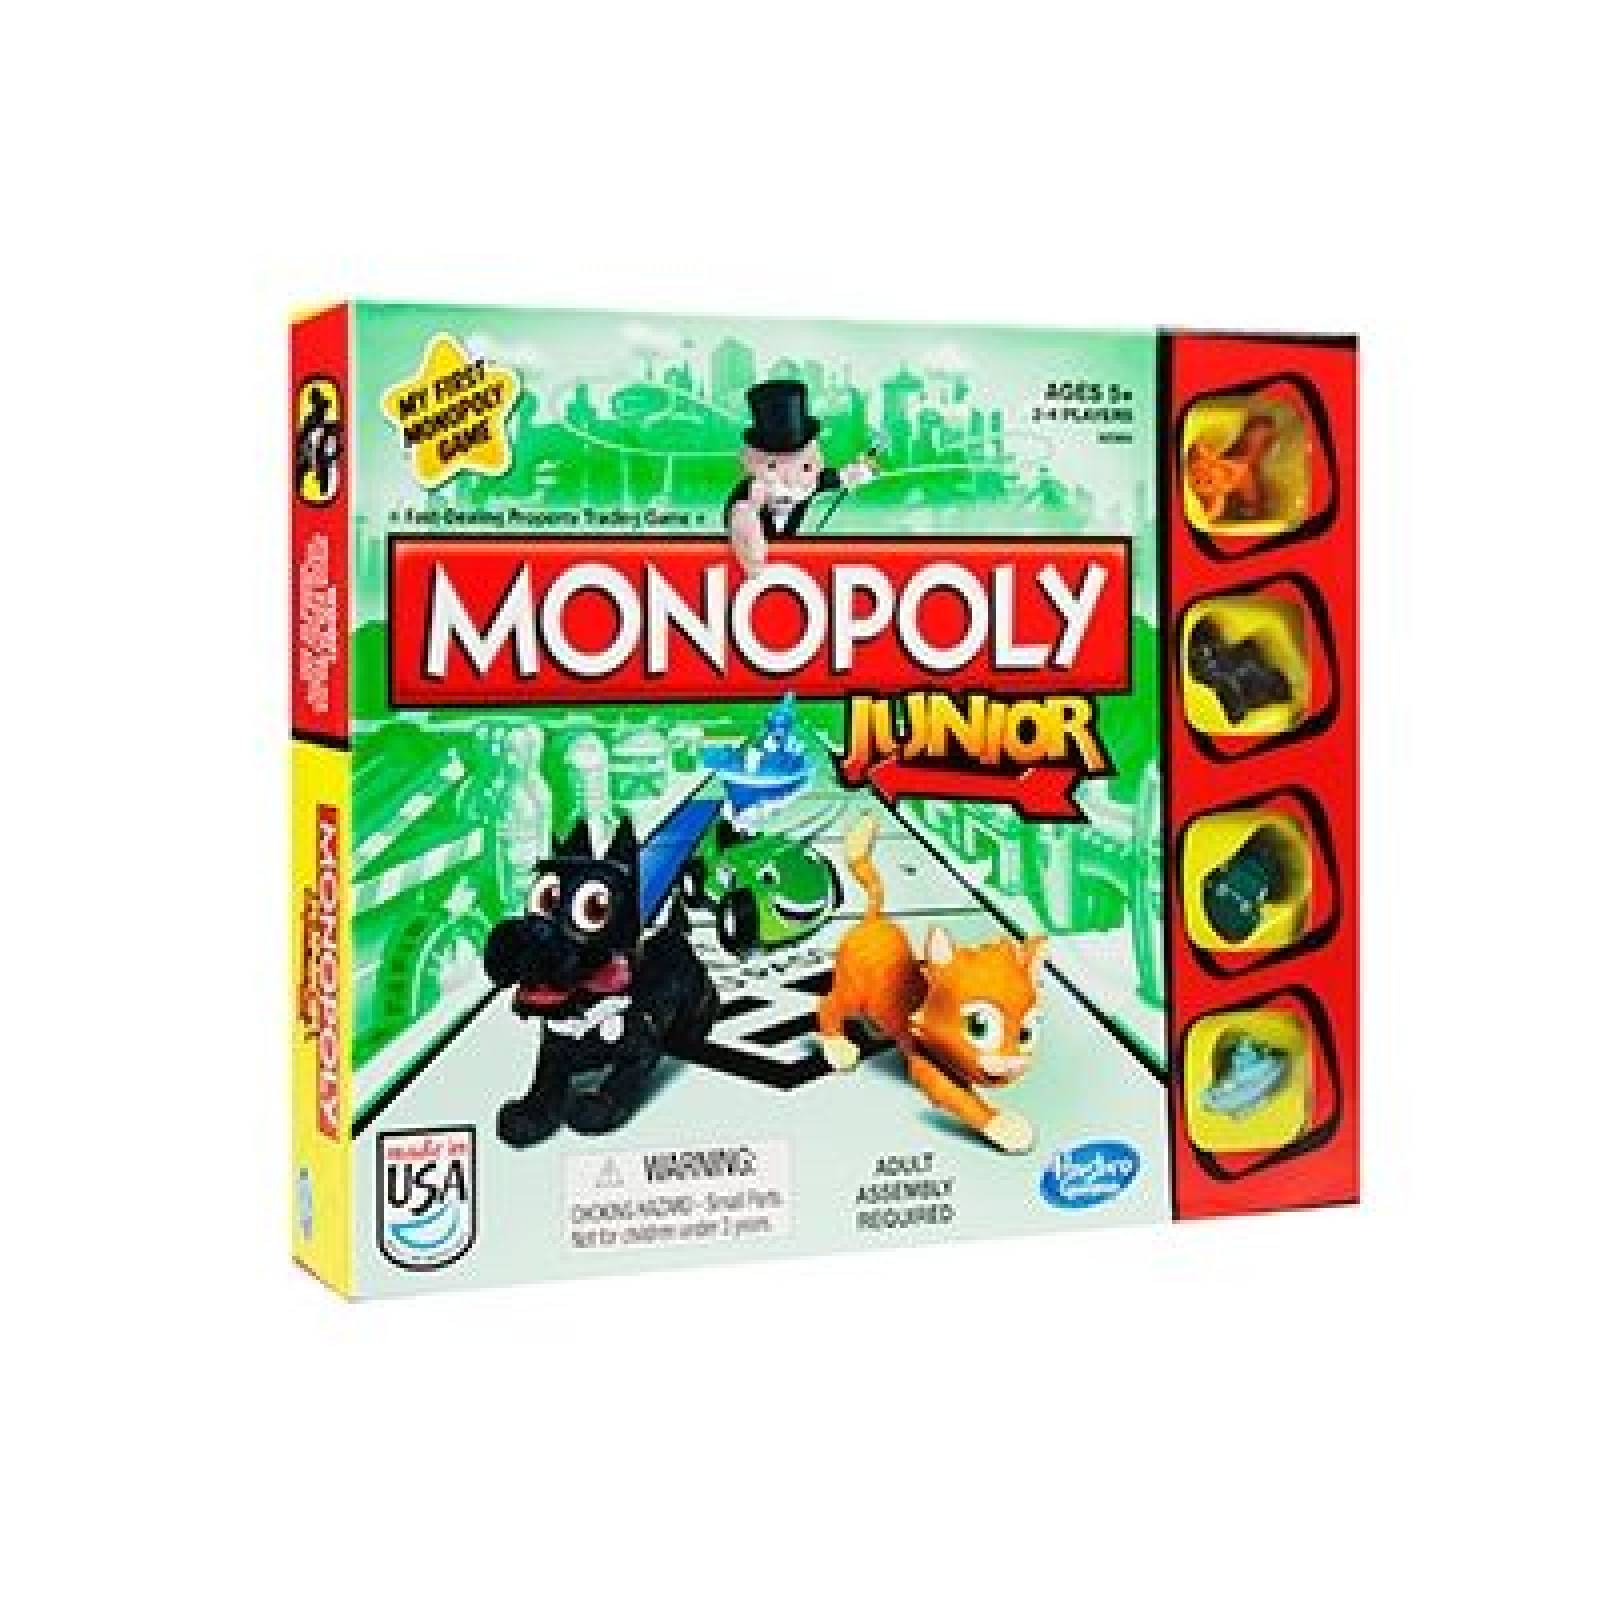 Monopoly Junior Game Age 5 + thumbnails